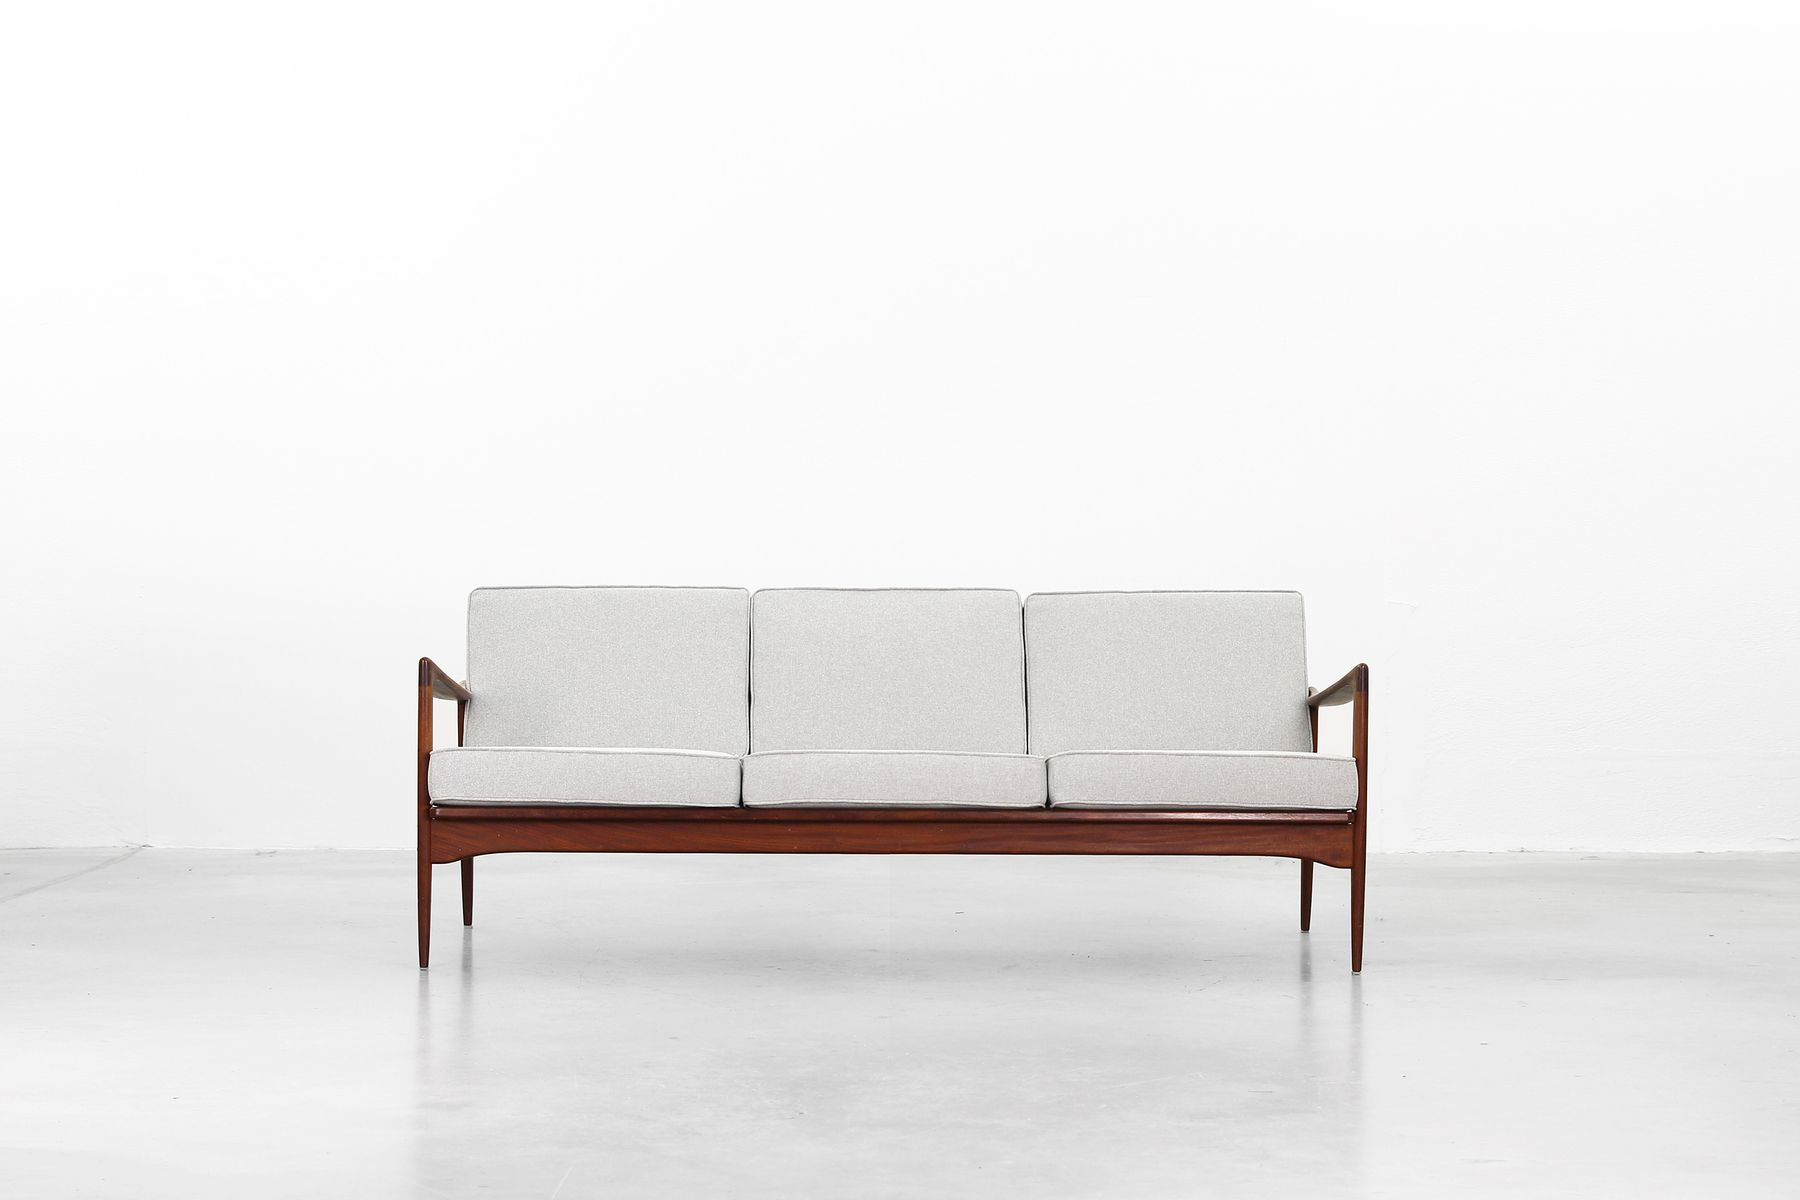 Sofa by Ib Kofod Larsen for OPE Mobler, 1960s for sale at Pamono